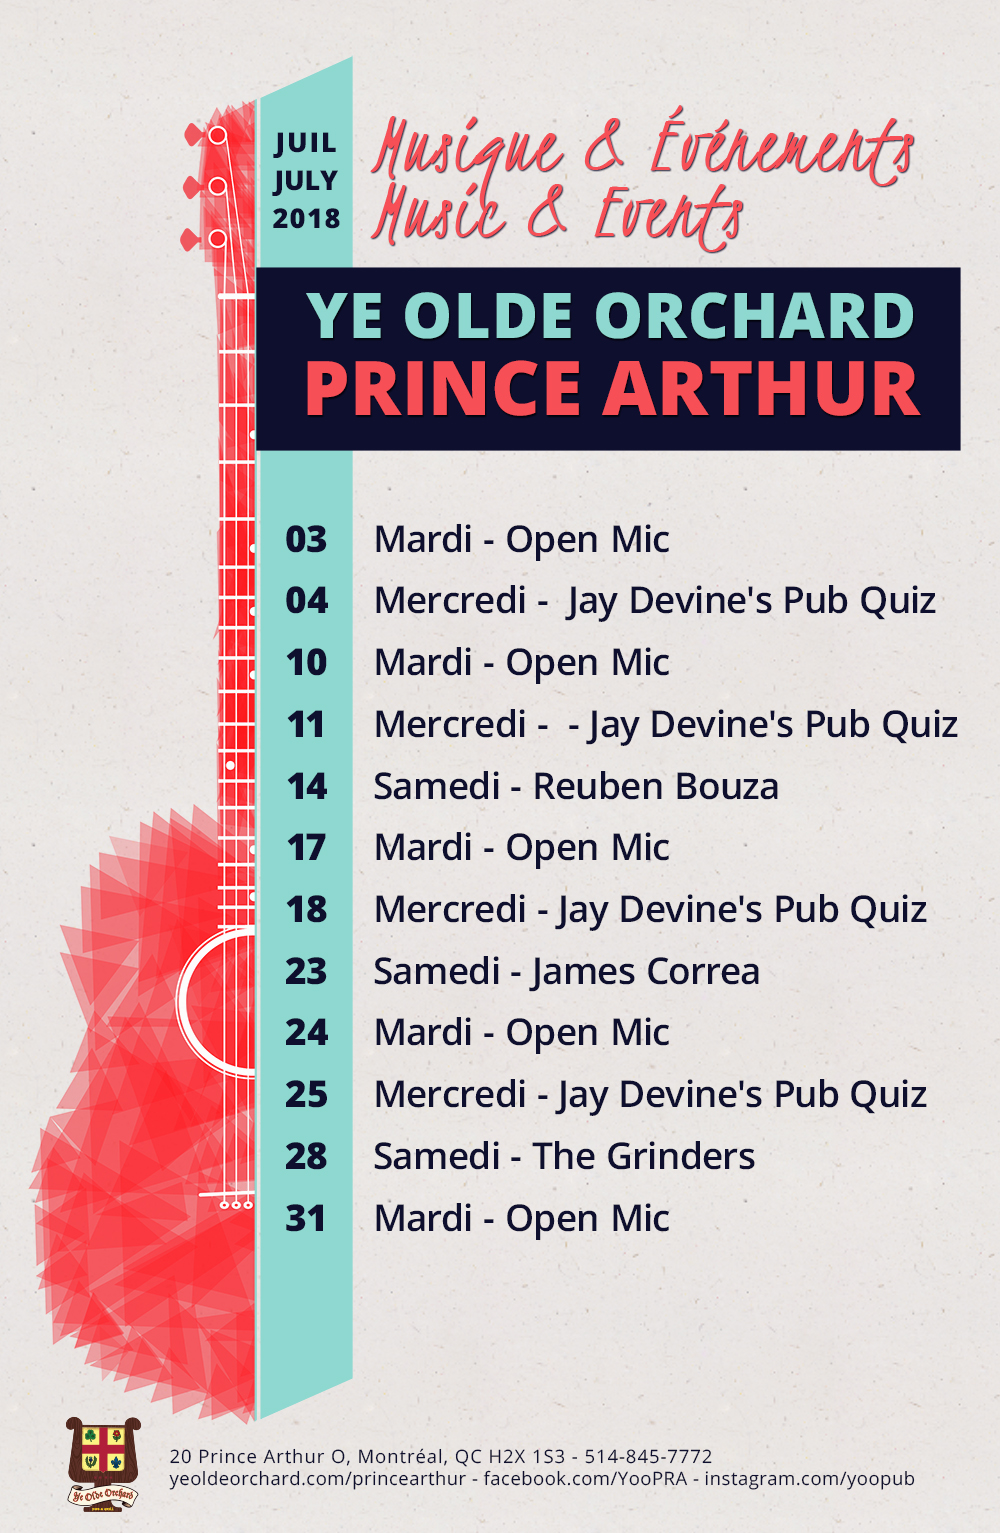 ye-olde-orchard-pub-music-and-events-calendar-prince-arthur-july-2018-WEB